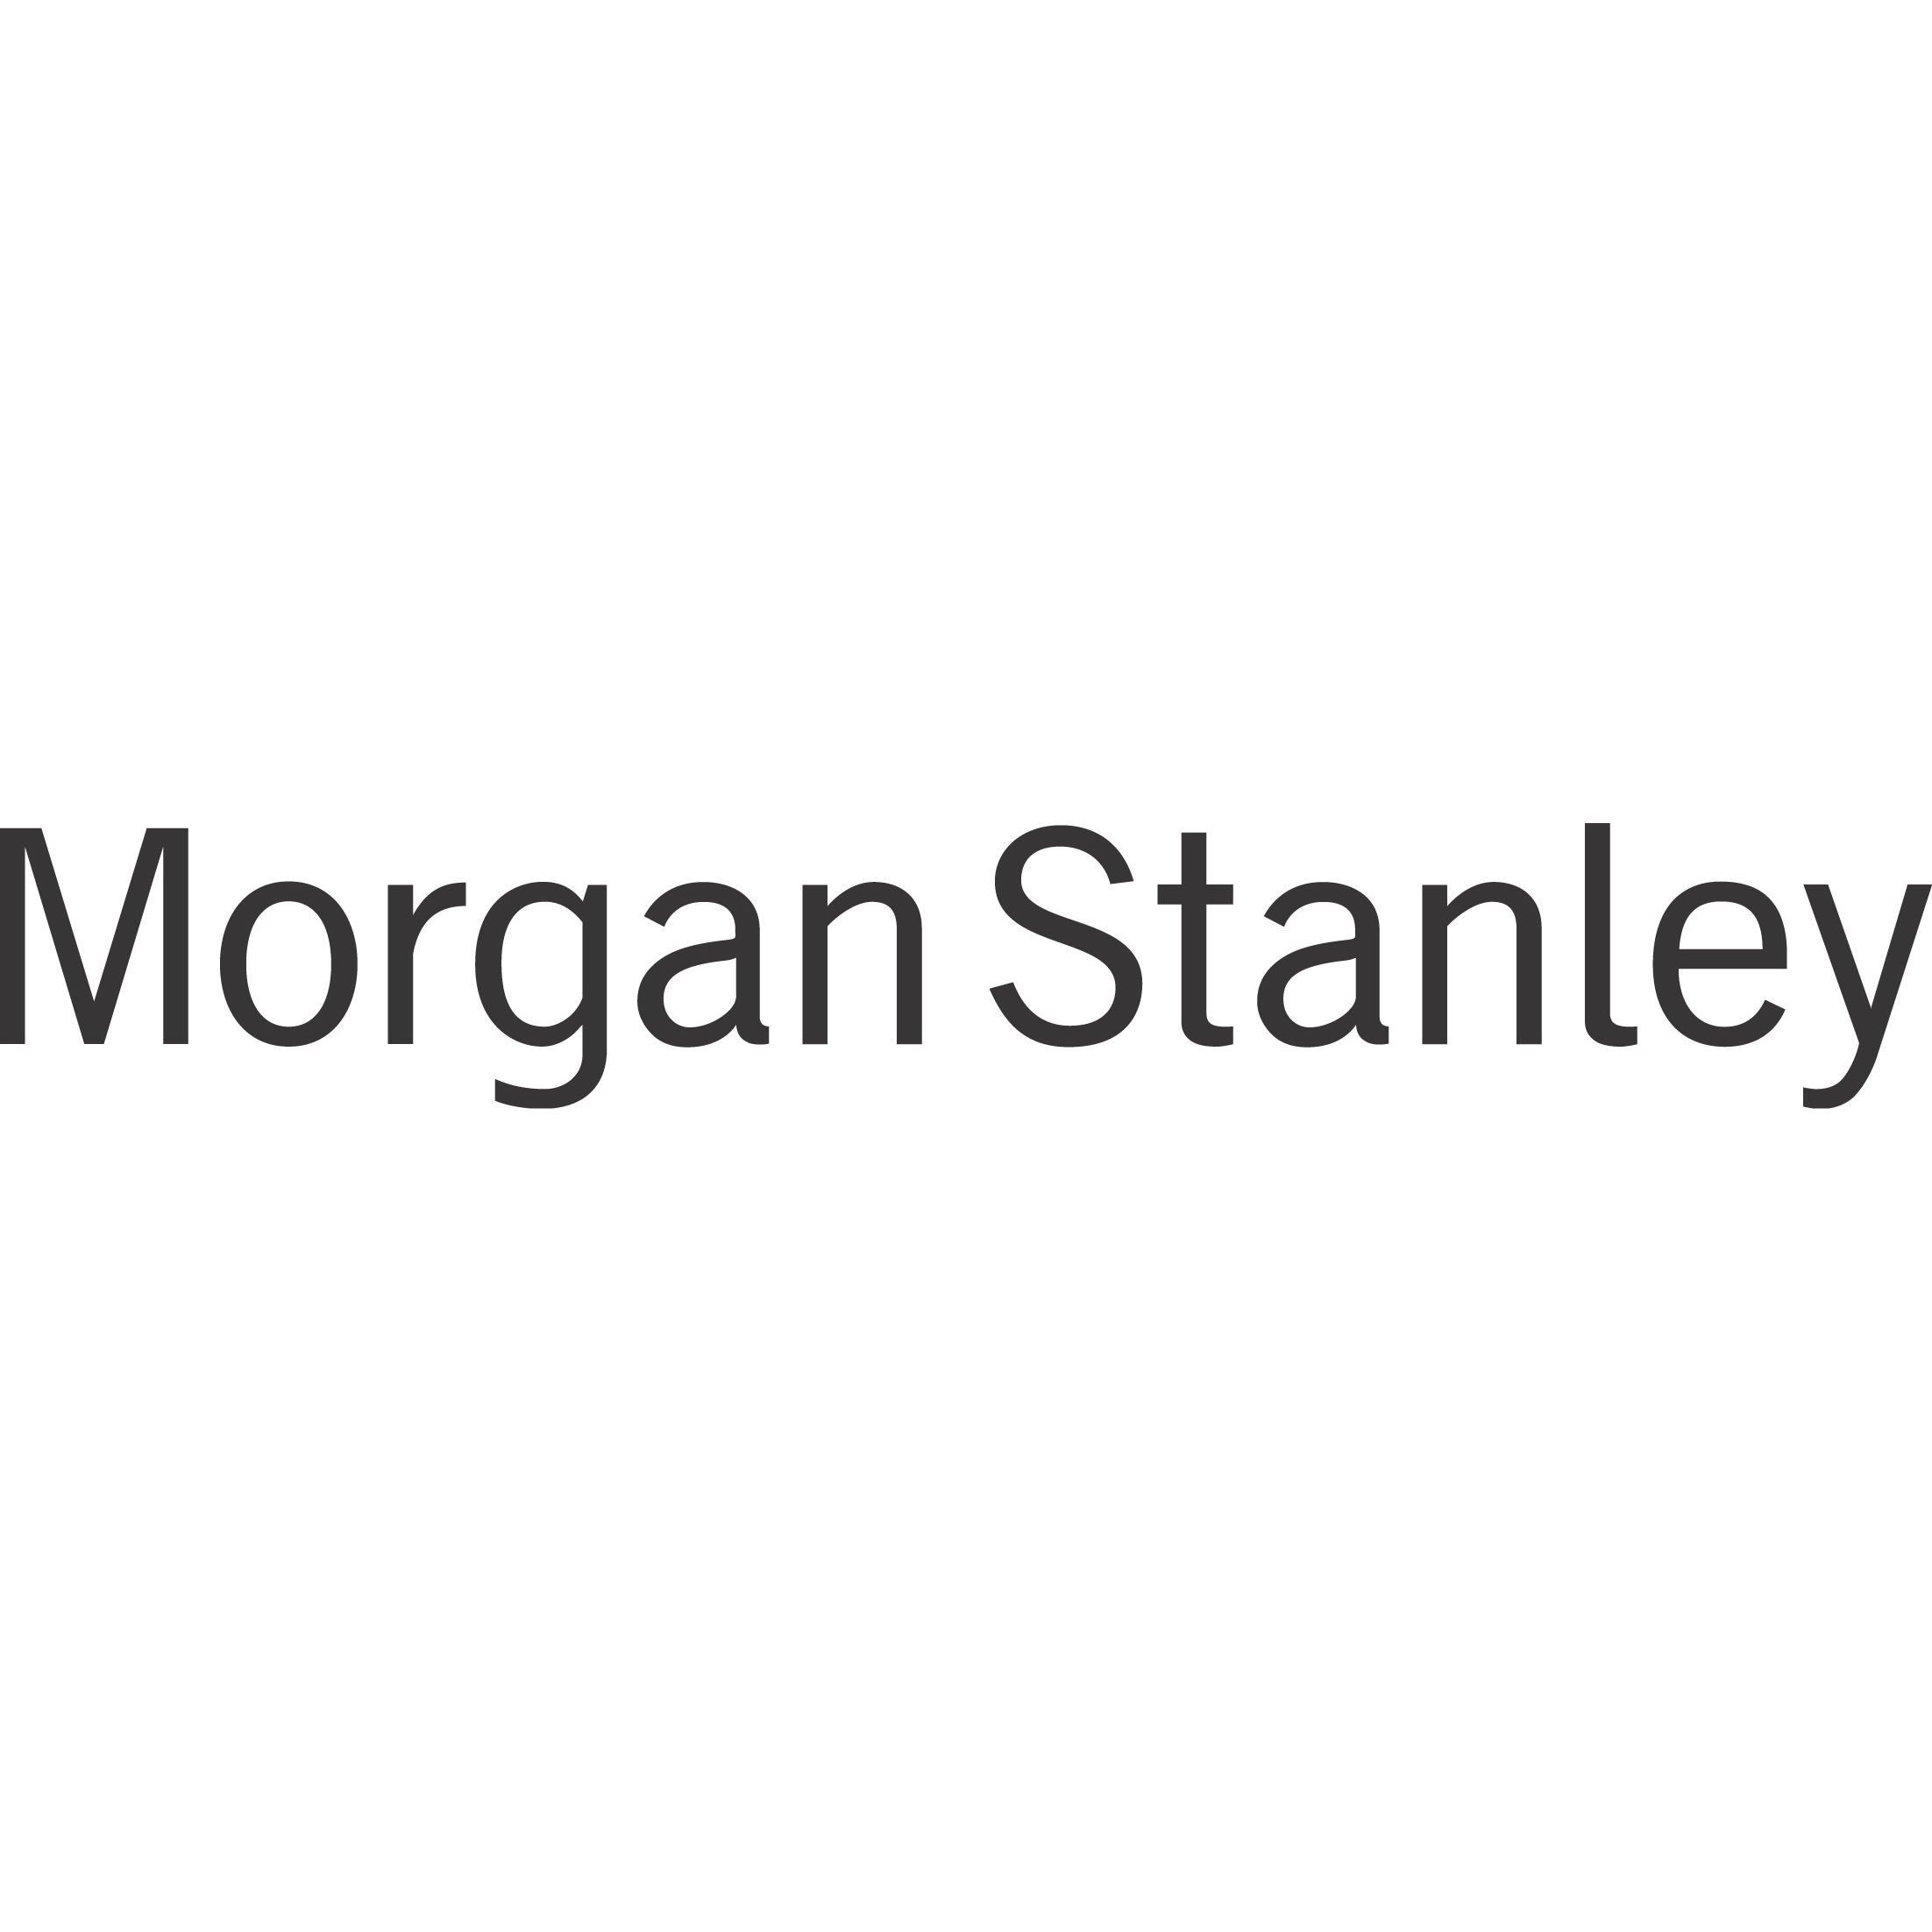 Tristan Simmons - Morgan Stanley | Financial Advisor in Fayetteville,Arkansas